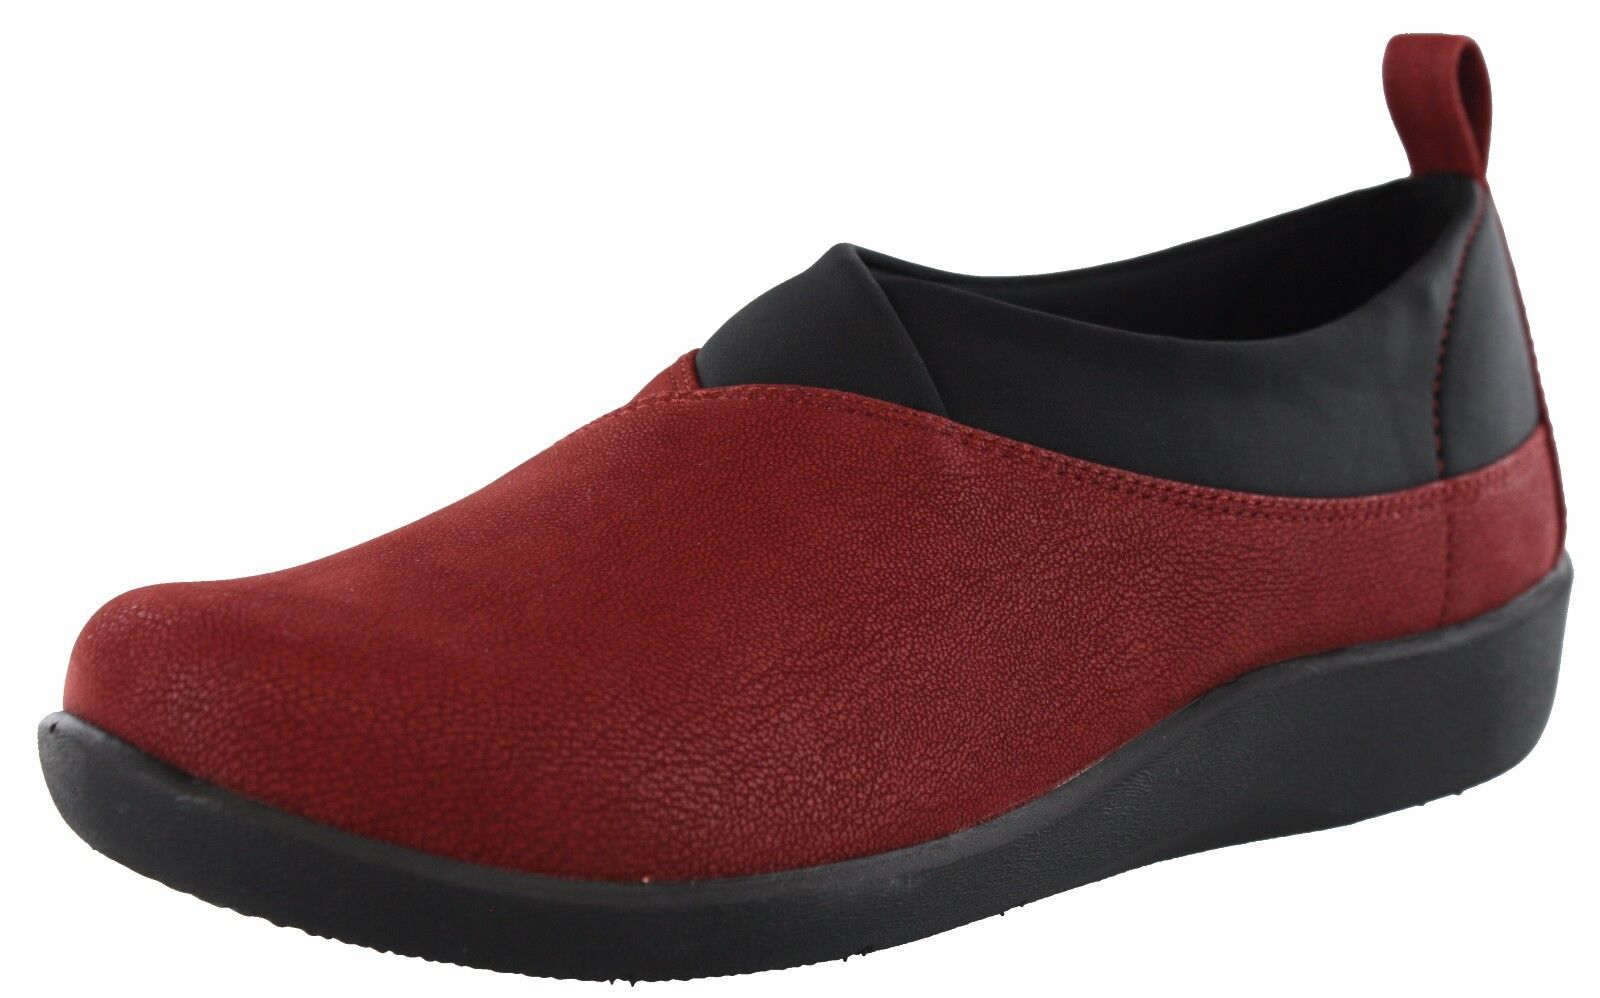 WOMENS CLARKS CLOUDSTEPPERS SILLIAN GREER MEDIUM AND WIDE WIDTH LOAFERS